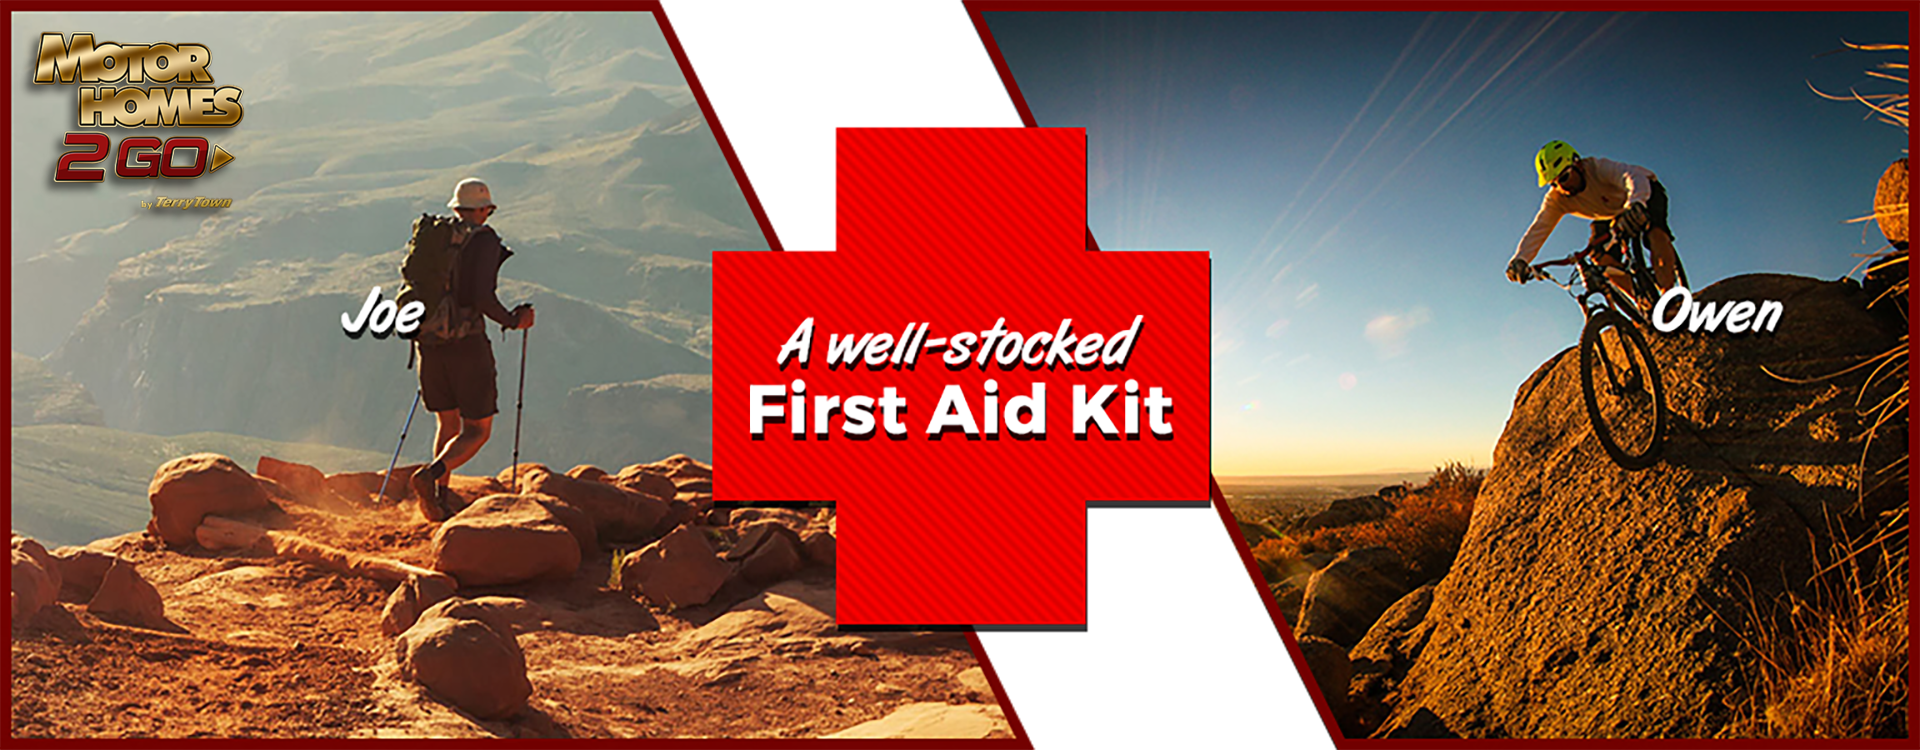 a well-stocked first-aid kit banner